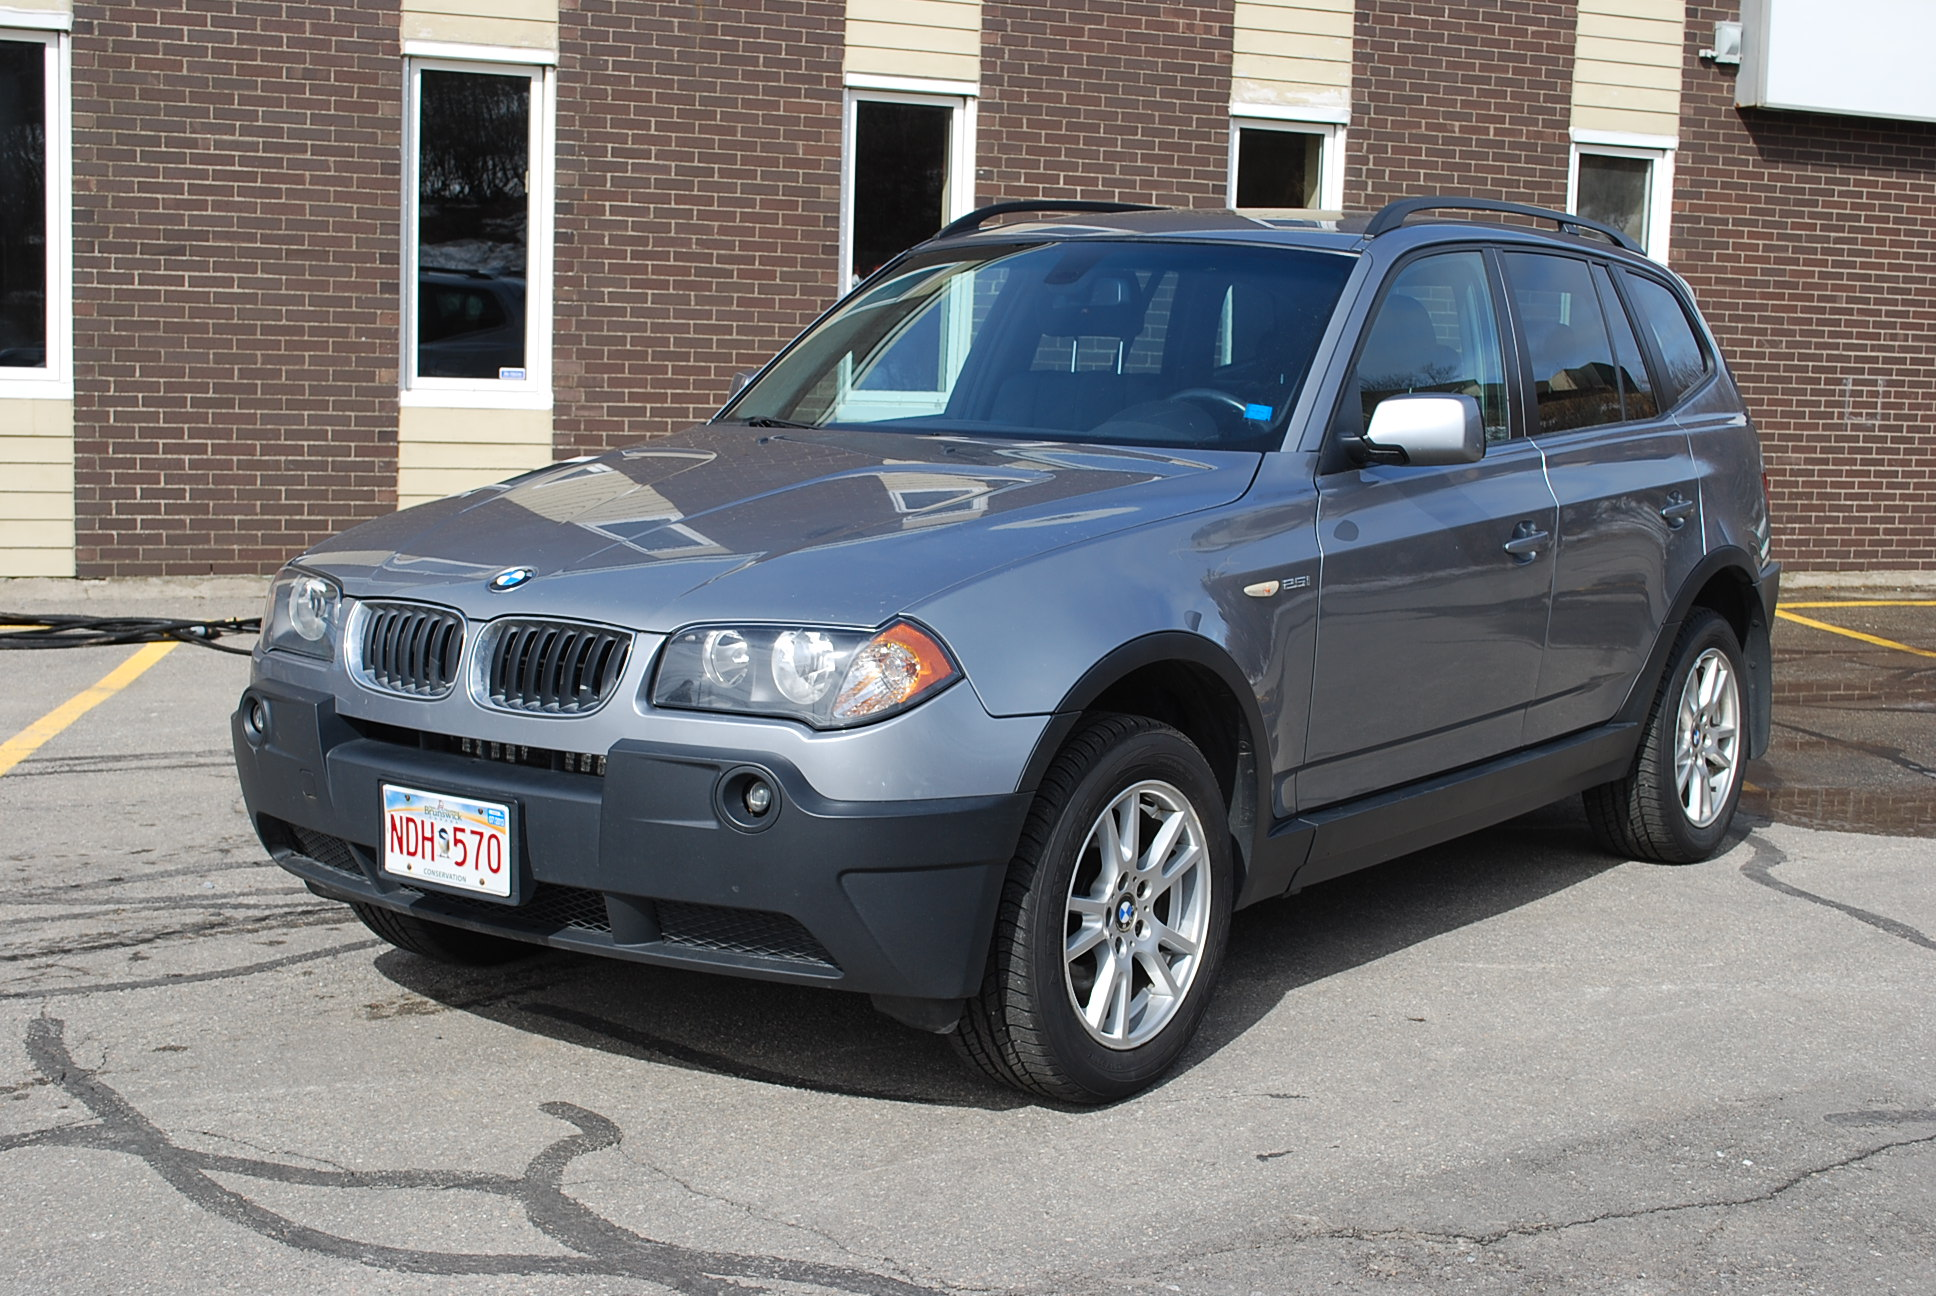 Used 2005 Bmw X3 2 5 Manual For Sale In Saint John Nb